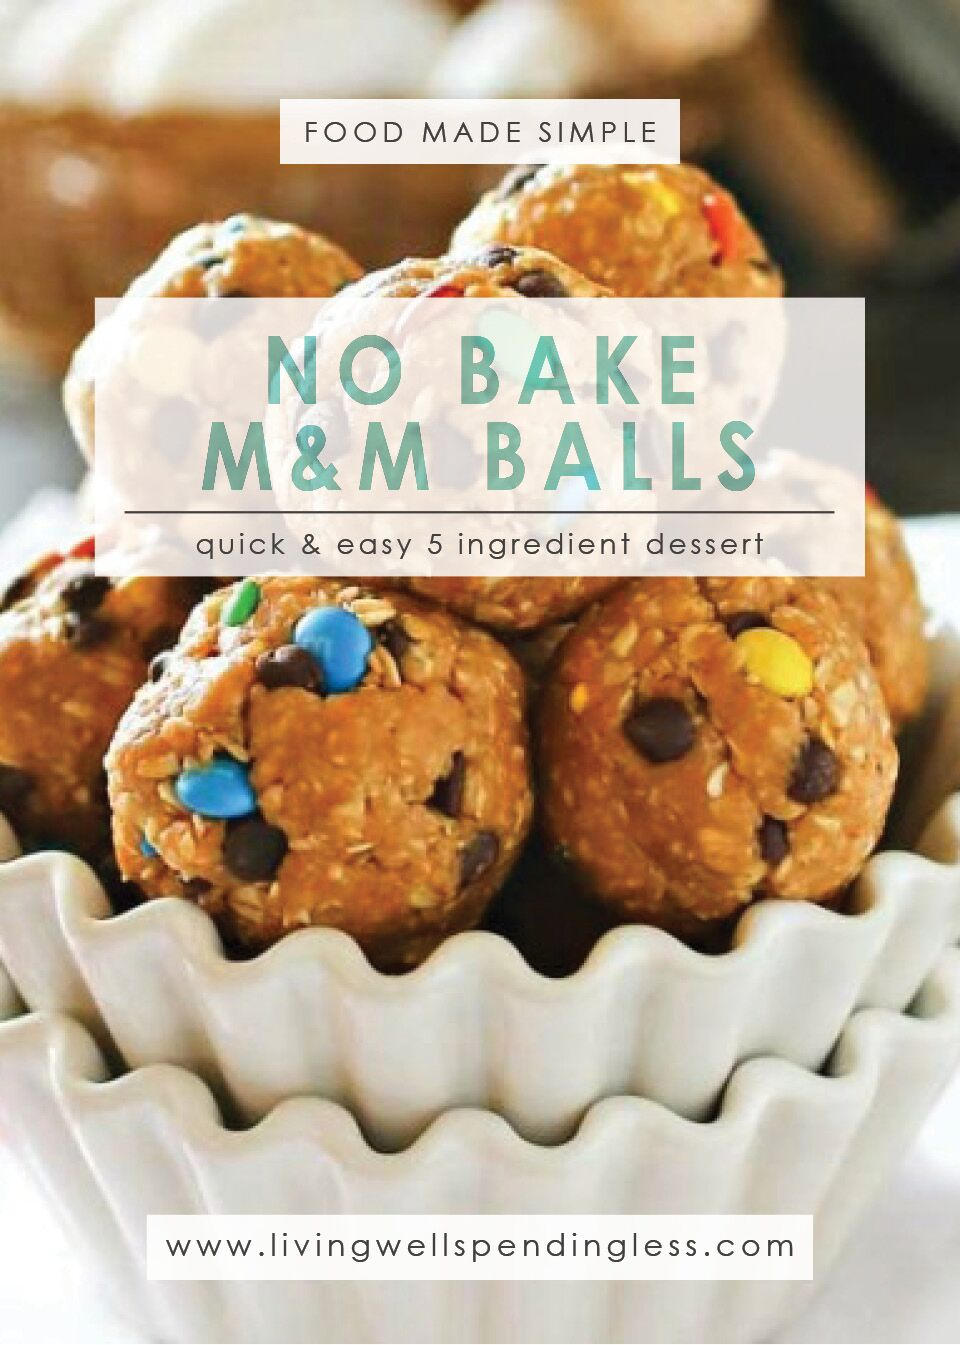 No Bake M&M Cookie Balls: Quick & Easy 5 Ingredient Dessert